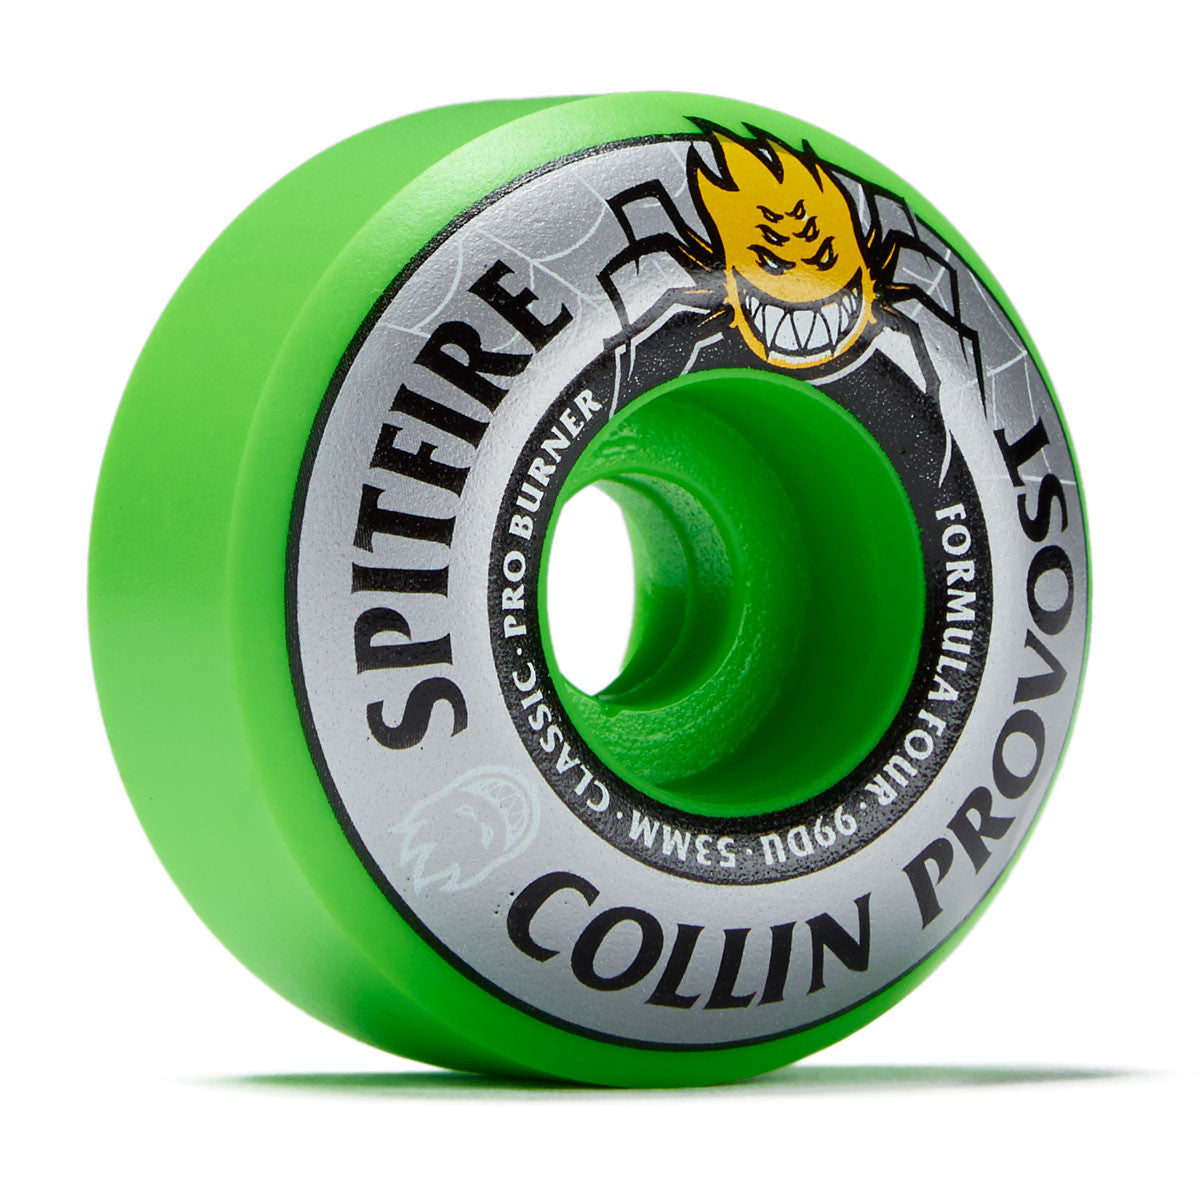 Spitfire Collin Provost Formula Four Classic Pro Burner Wheels 53mm 99DU Green - Feet First NJ